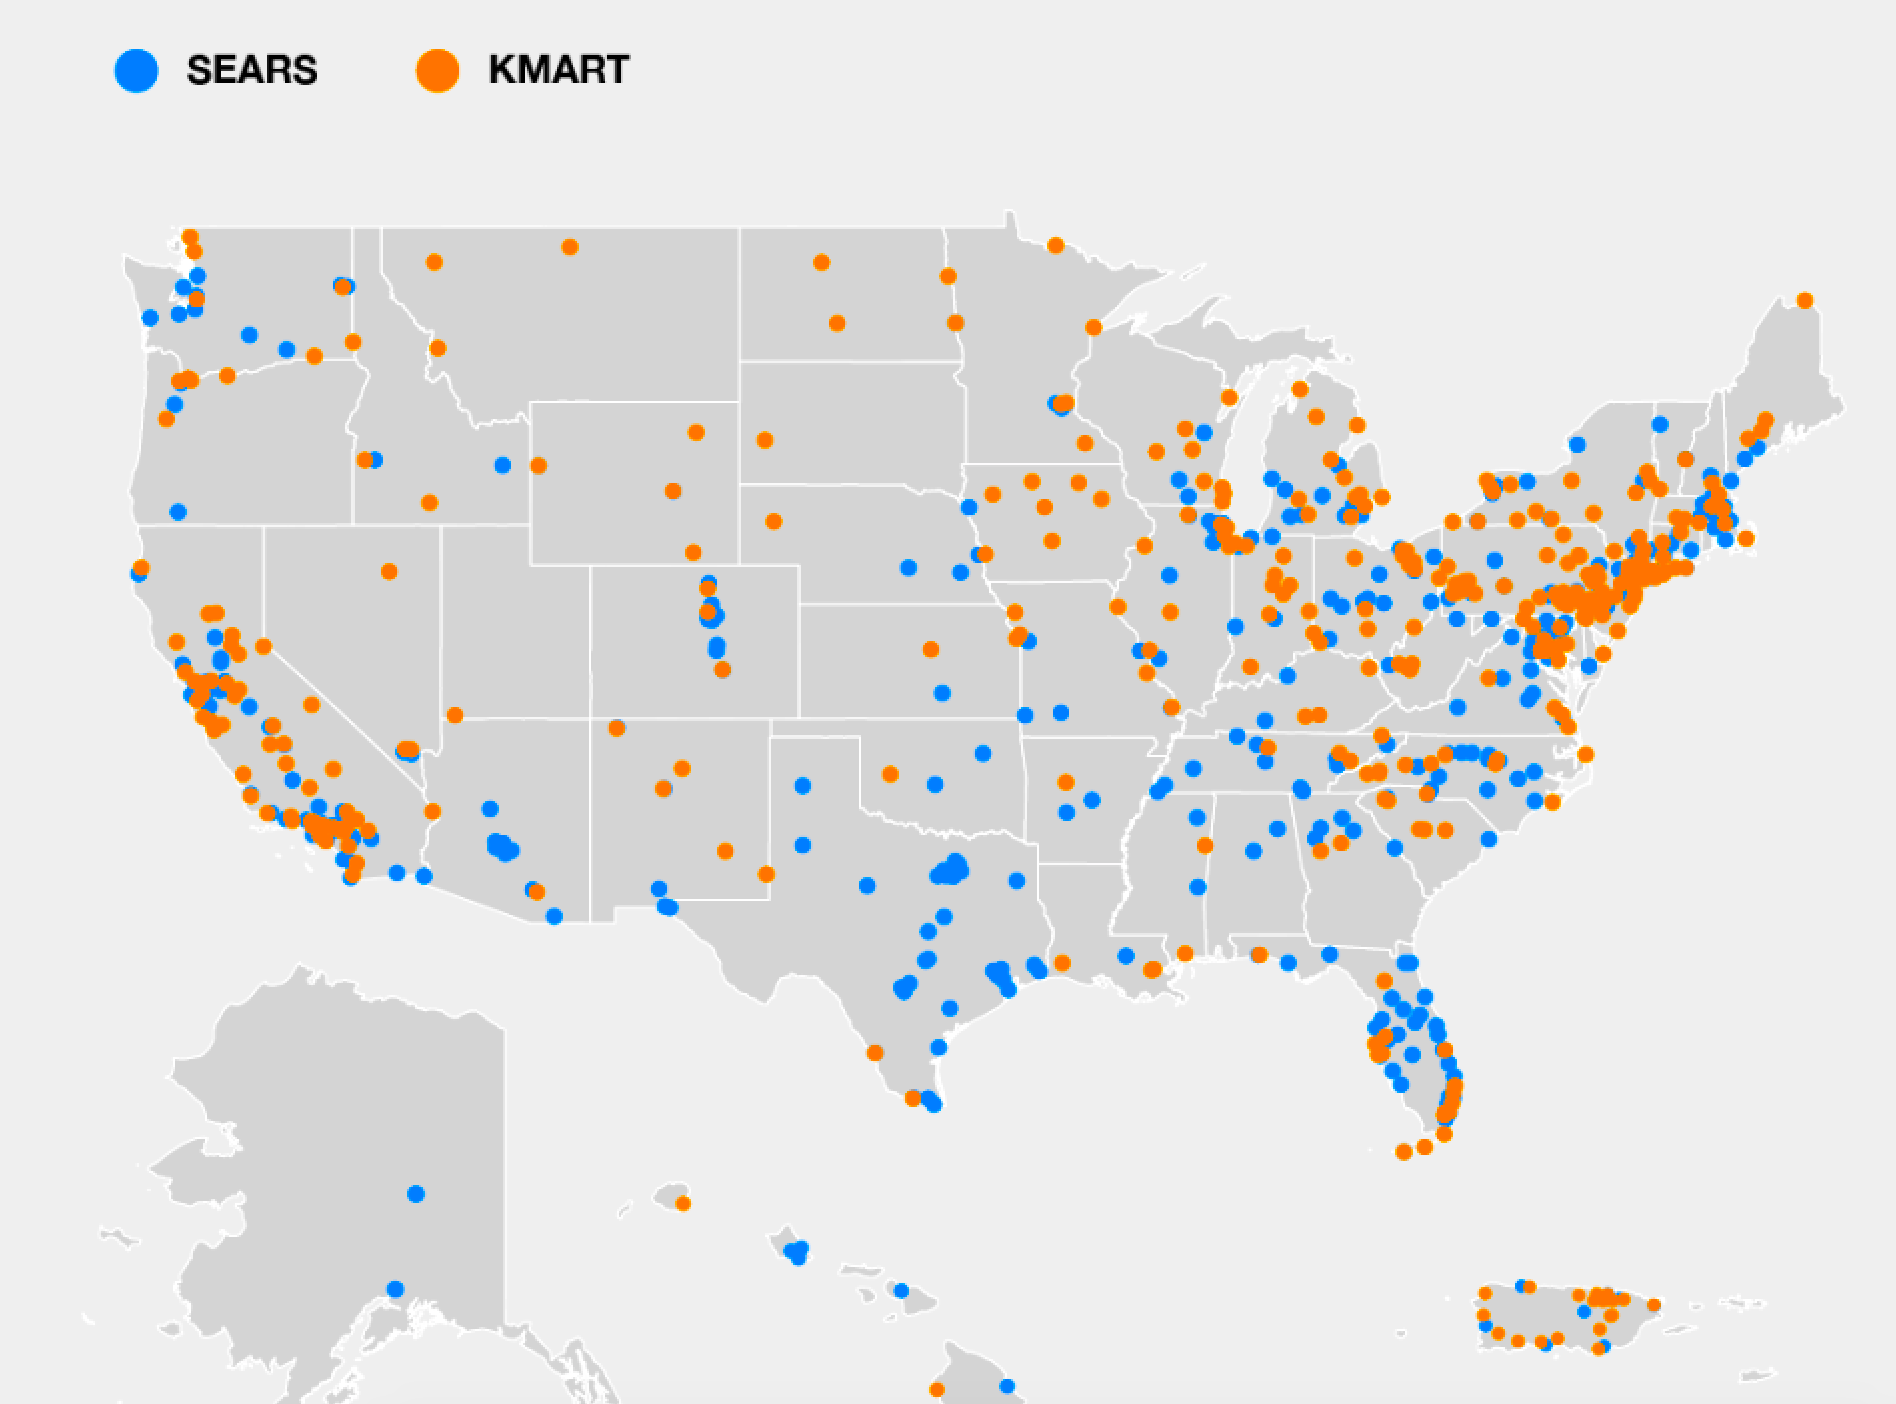 Map: Sears and Kmarts left in America on lg store map, schnucks store map, gnc store map, market basket store map, express store map, finish line store map, chicago store map, dillard's store map, ahold store map, albertsons store map, supervalu store map, brookshire's store map, pathmark store map, spirit halloween store map, old navy store map, gamestop store map, amazon store map, vons store map, radioshack store map, belk store map,